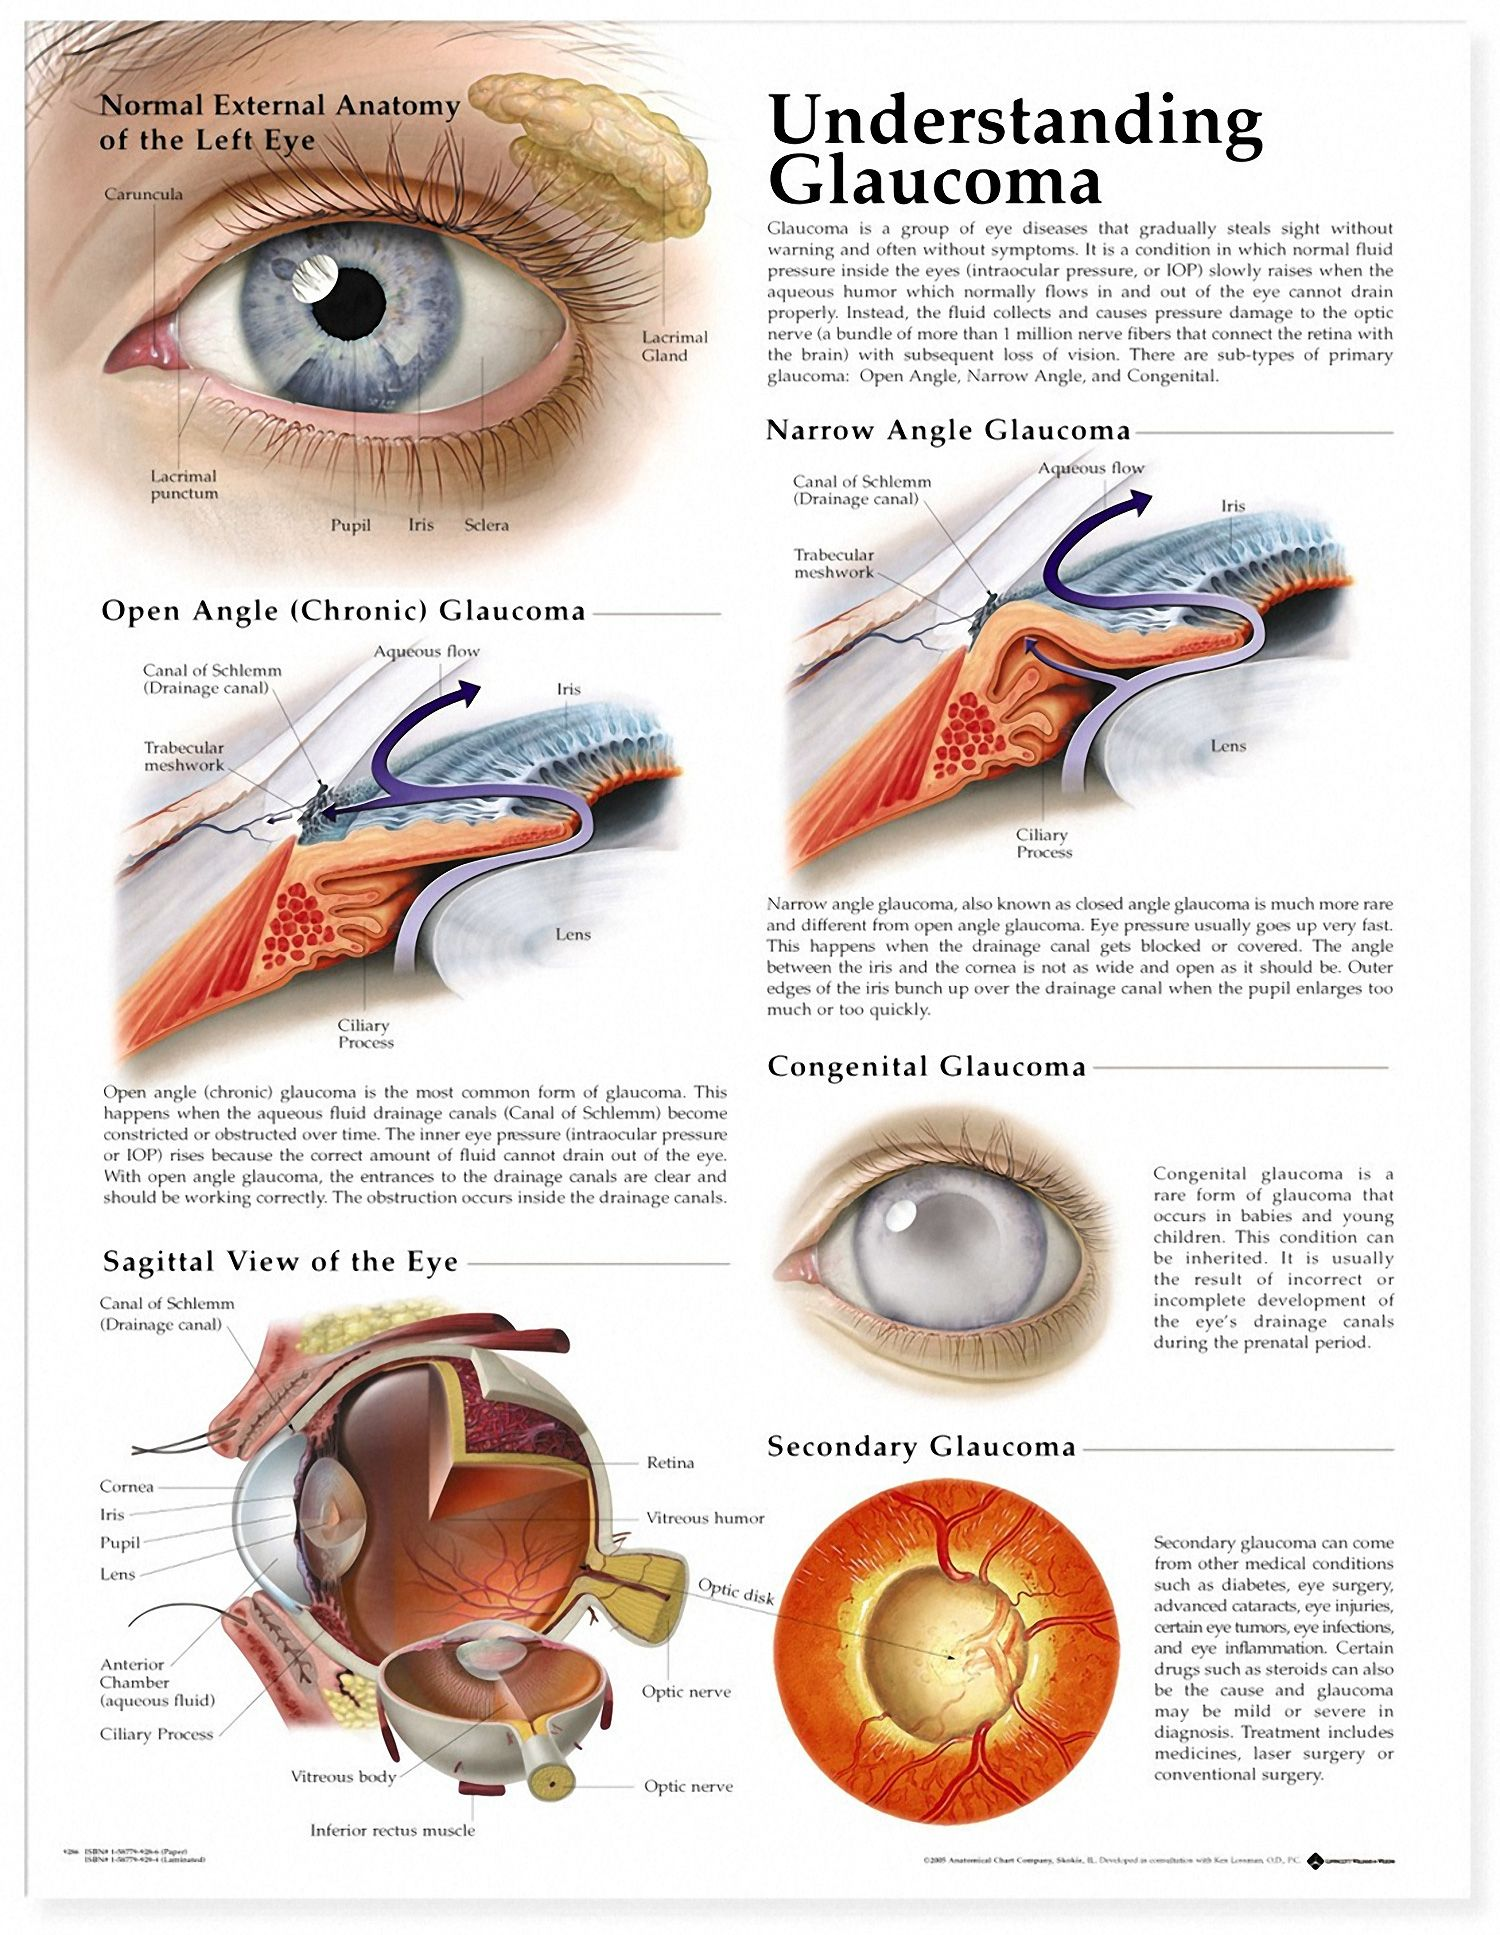 Risk Factors Associated With Progression of Glaucoma Identified ...